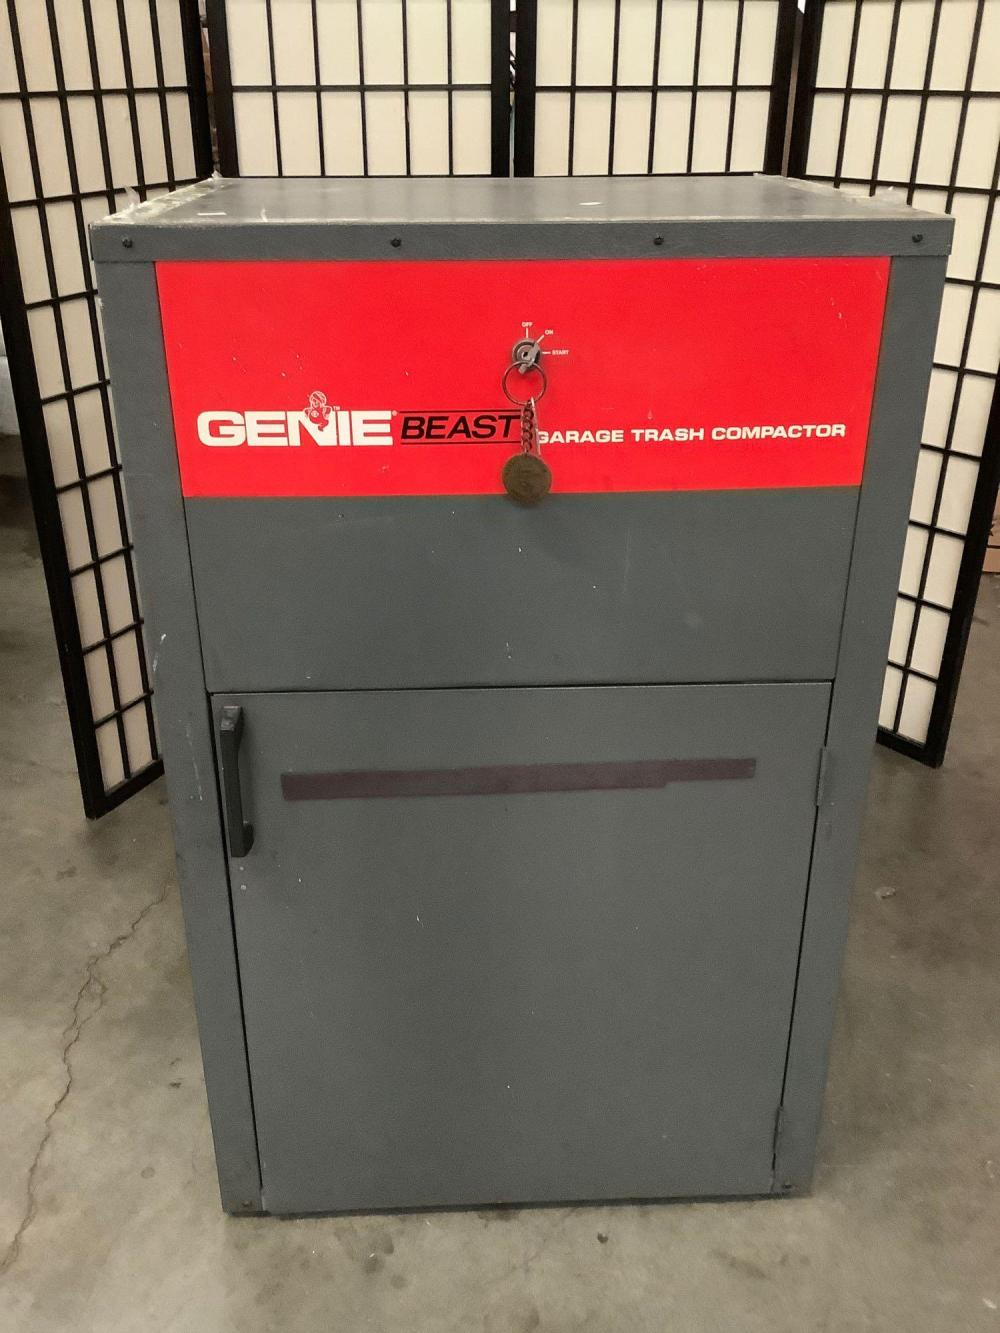 Genie Beast garage trash compactor, model GTC-1, tested and working